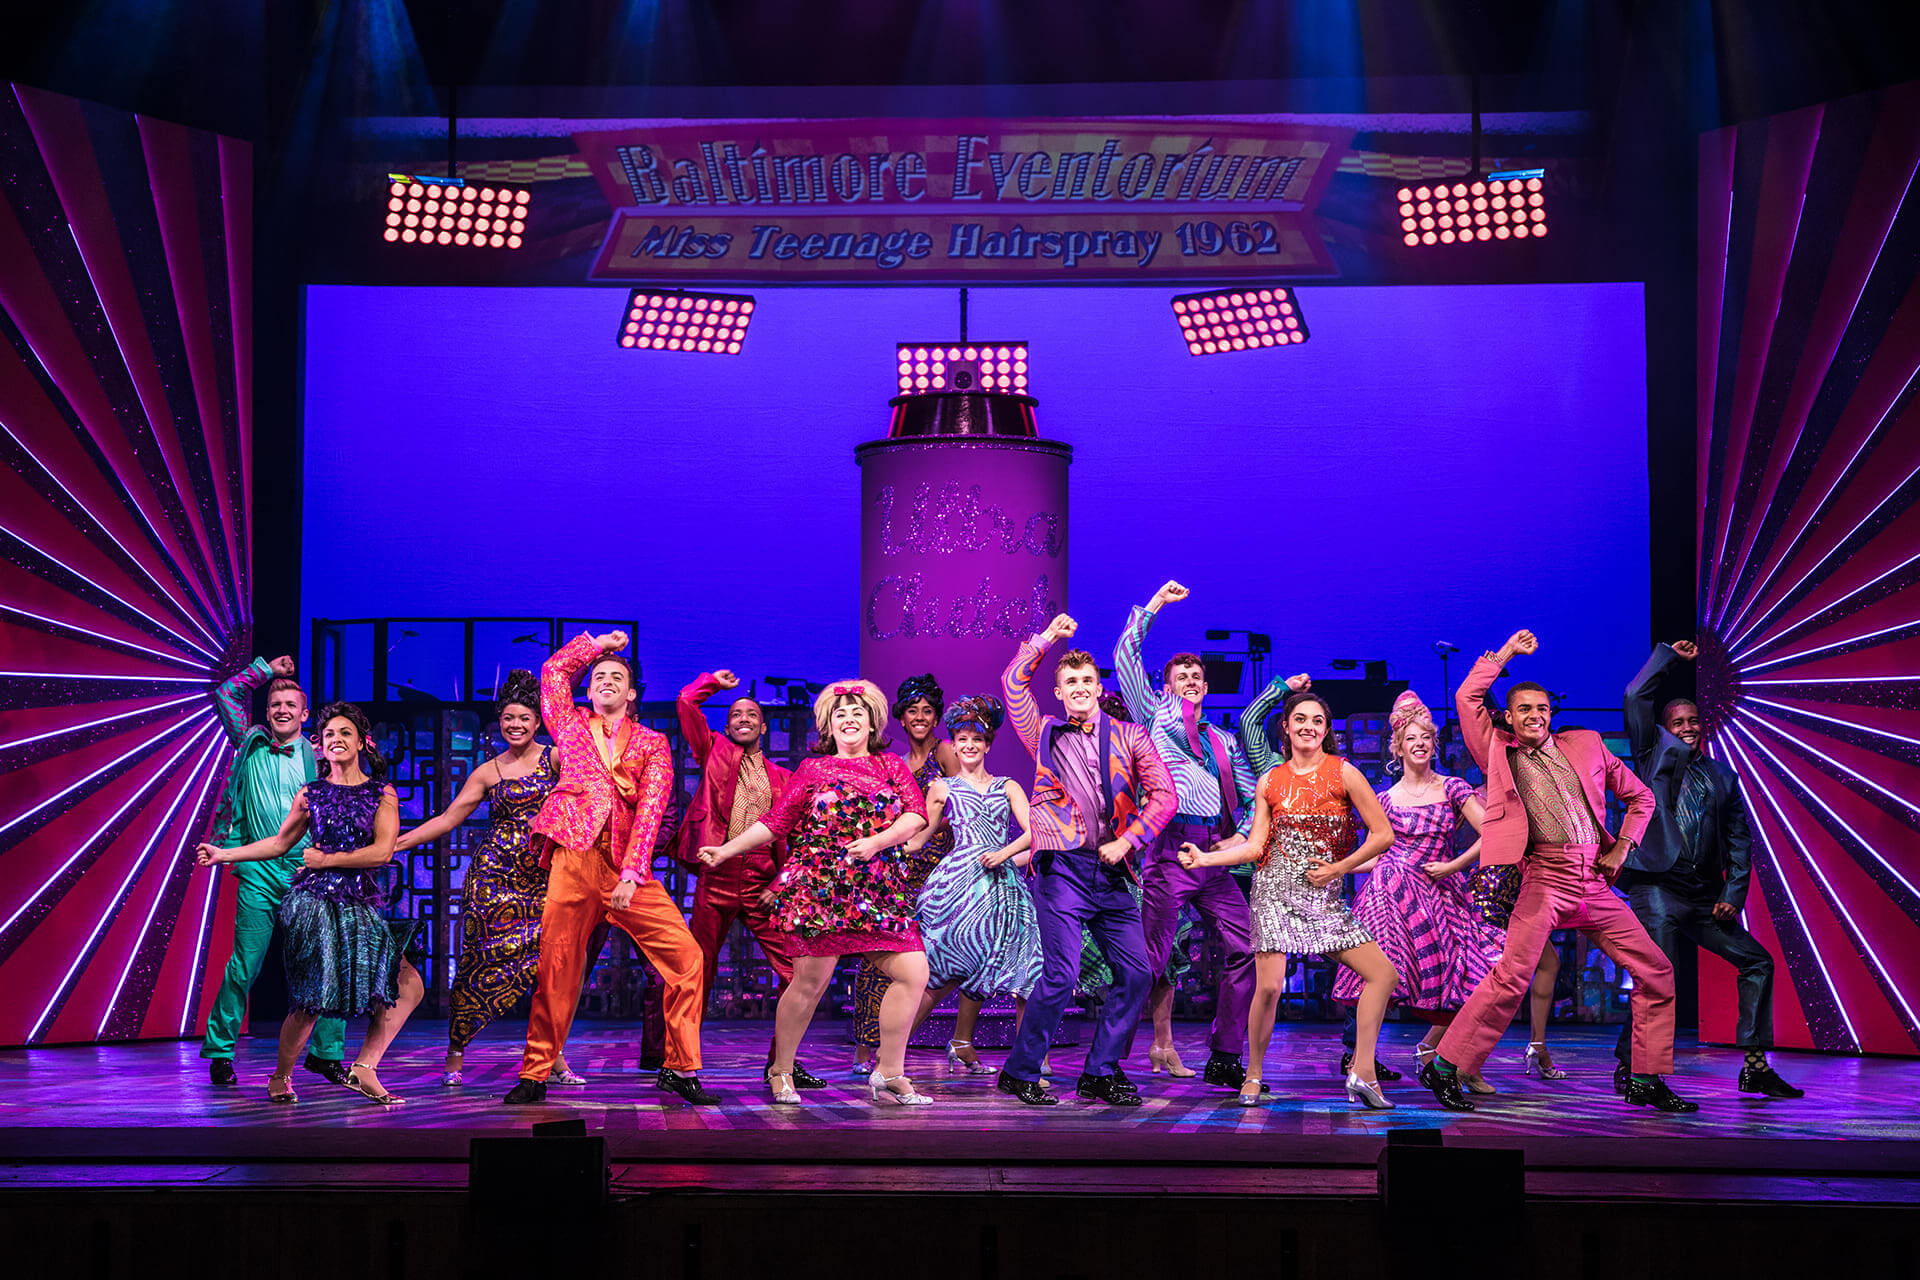 cast of Hairspray on stage dancing in sync. They are all dressed colourfully and the stage is lit up pink